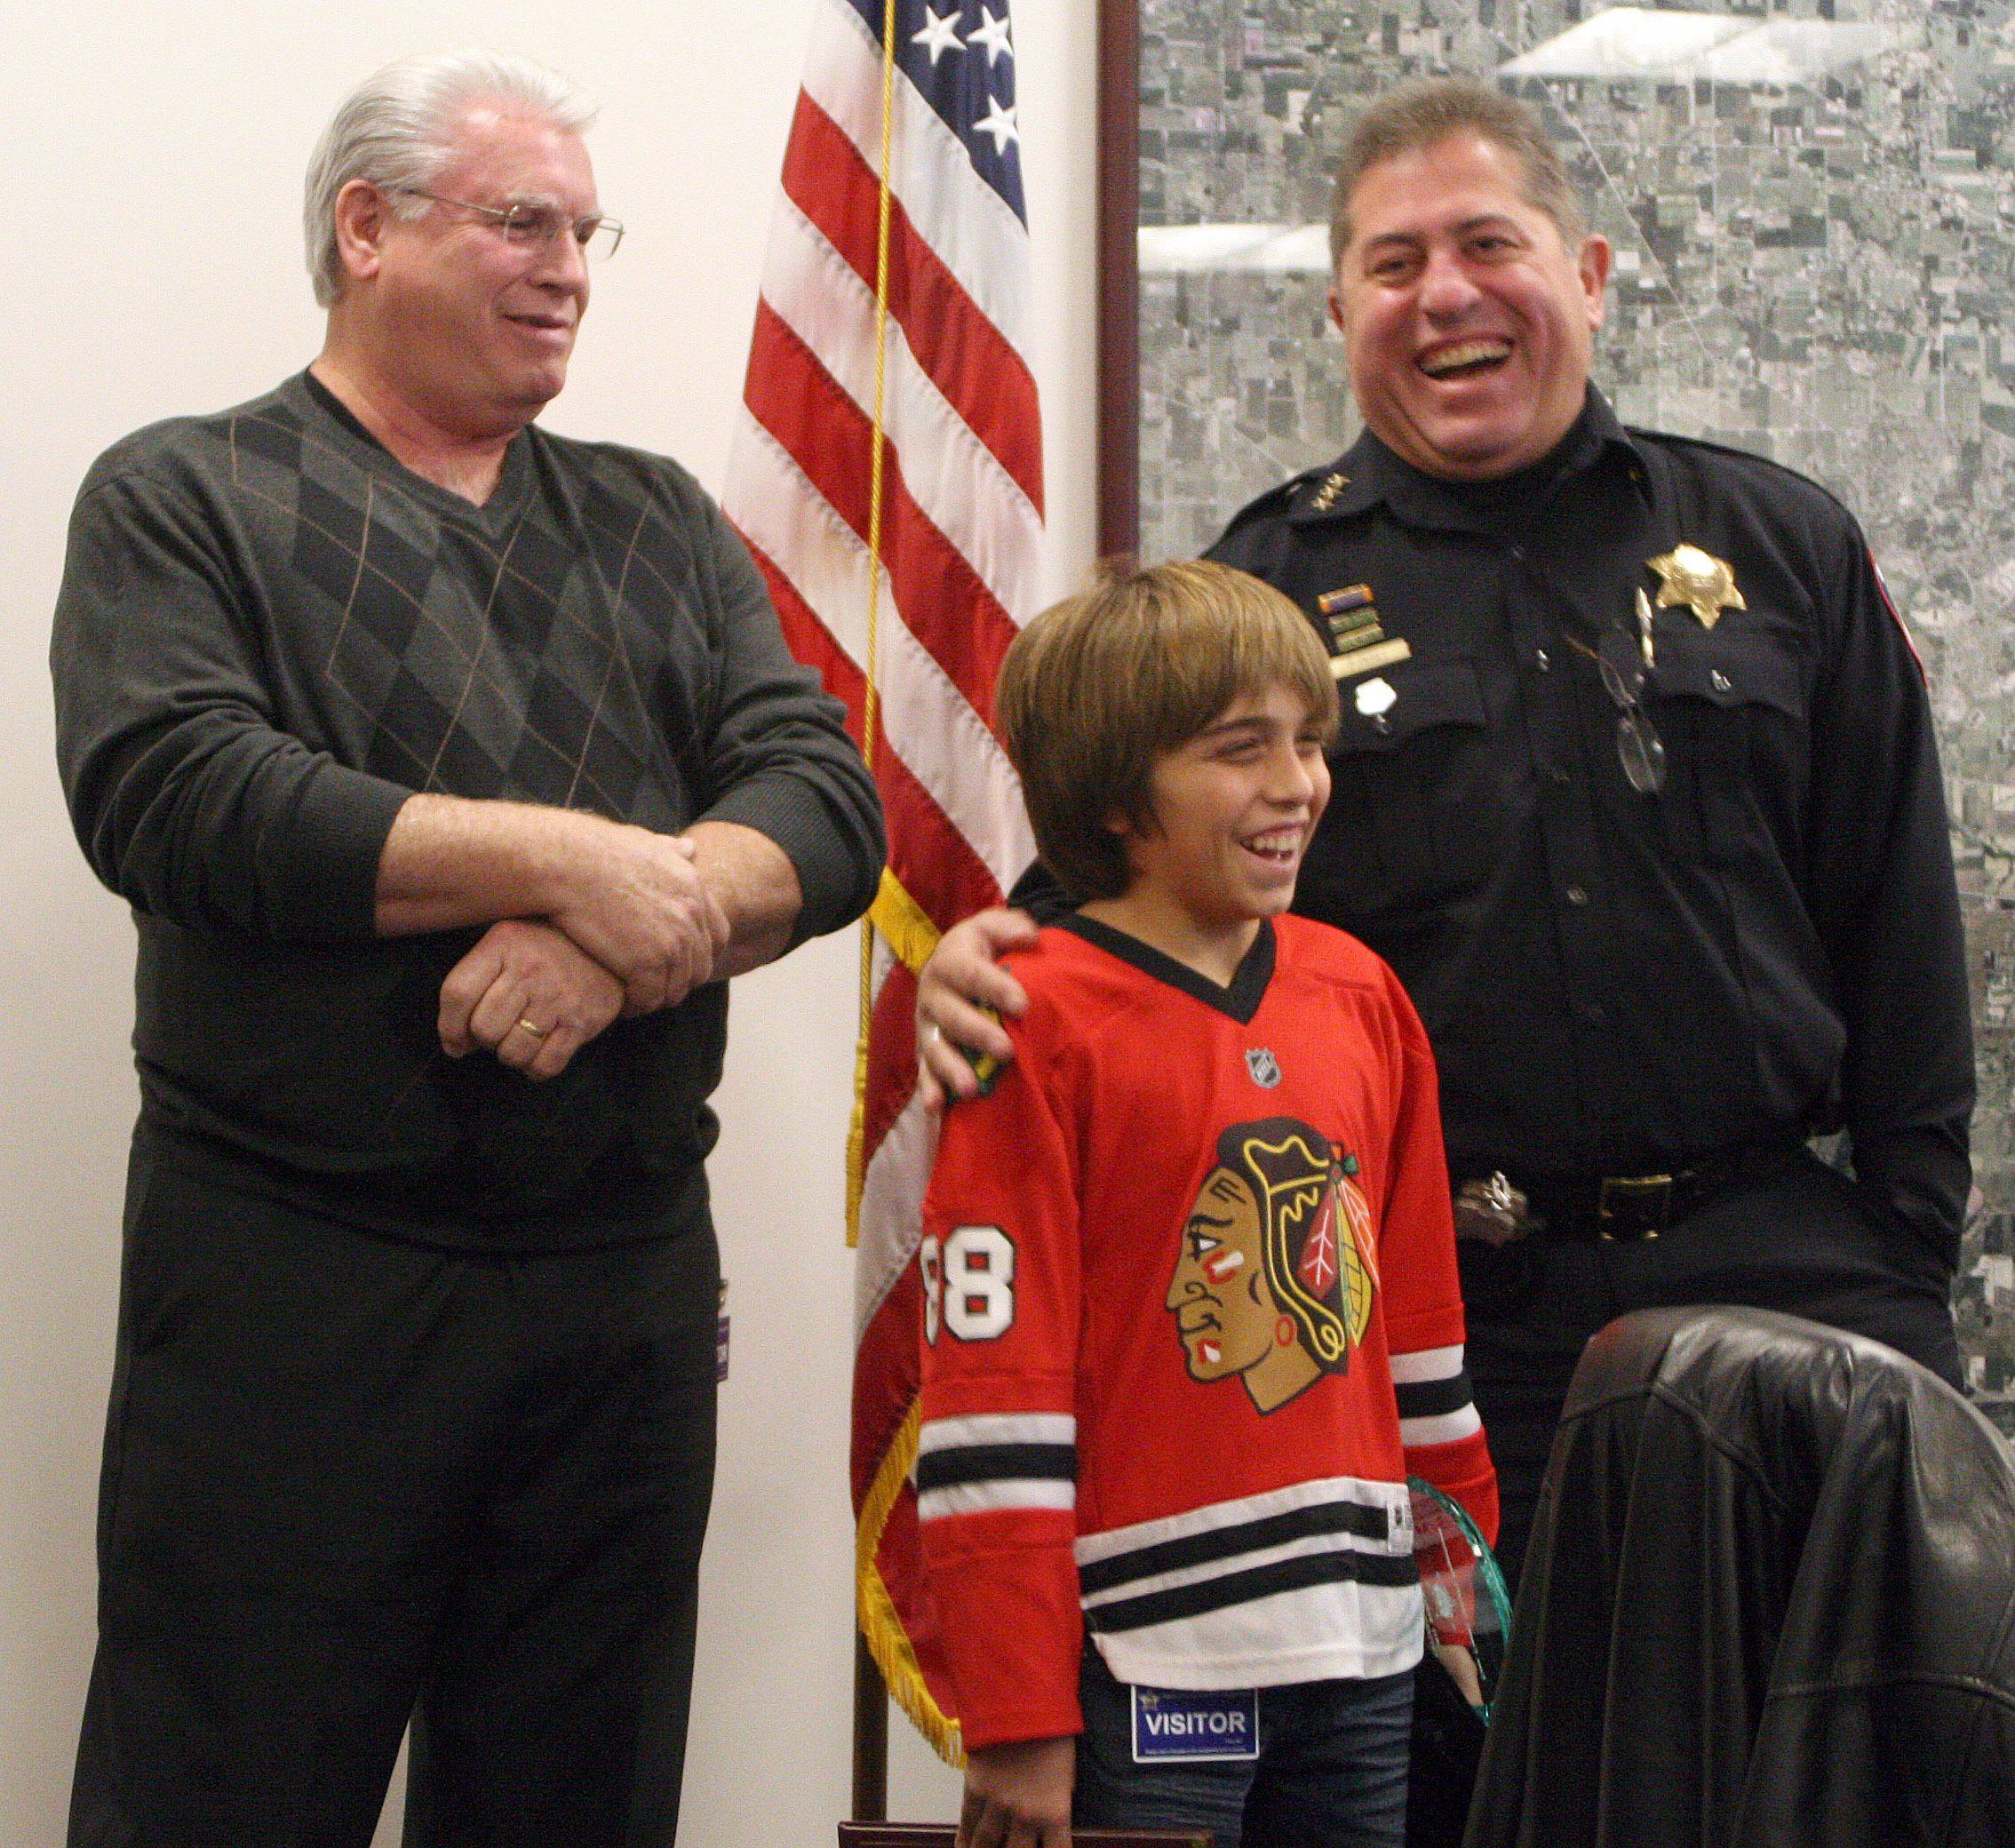 Kaneland Middle School student wins award from sheriff's office